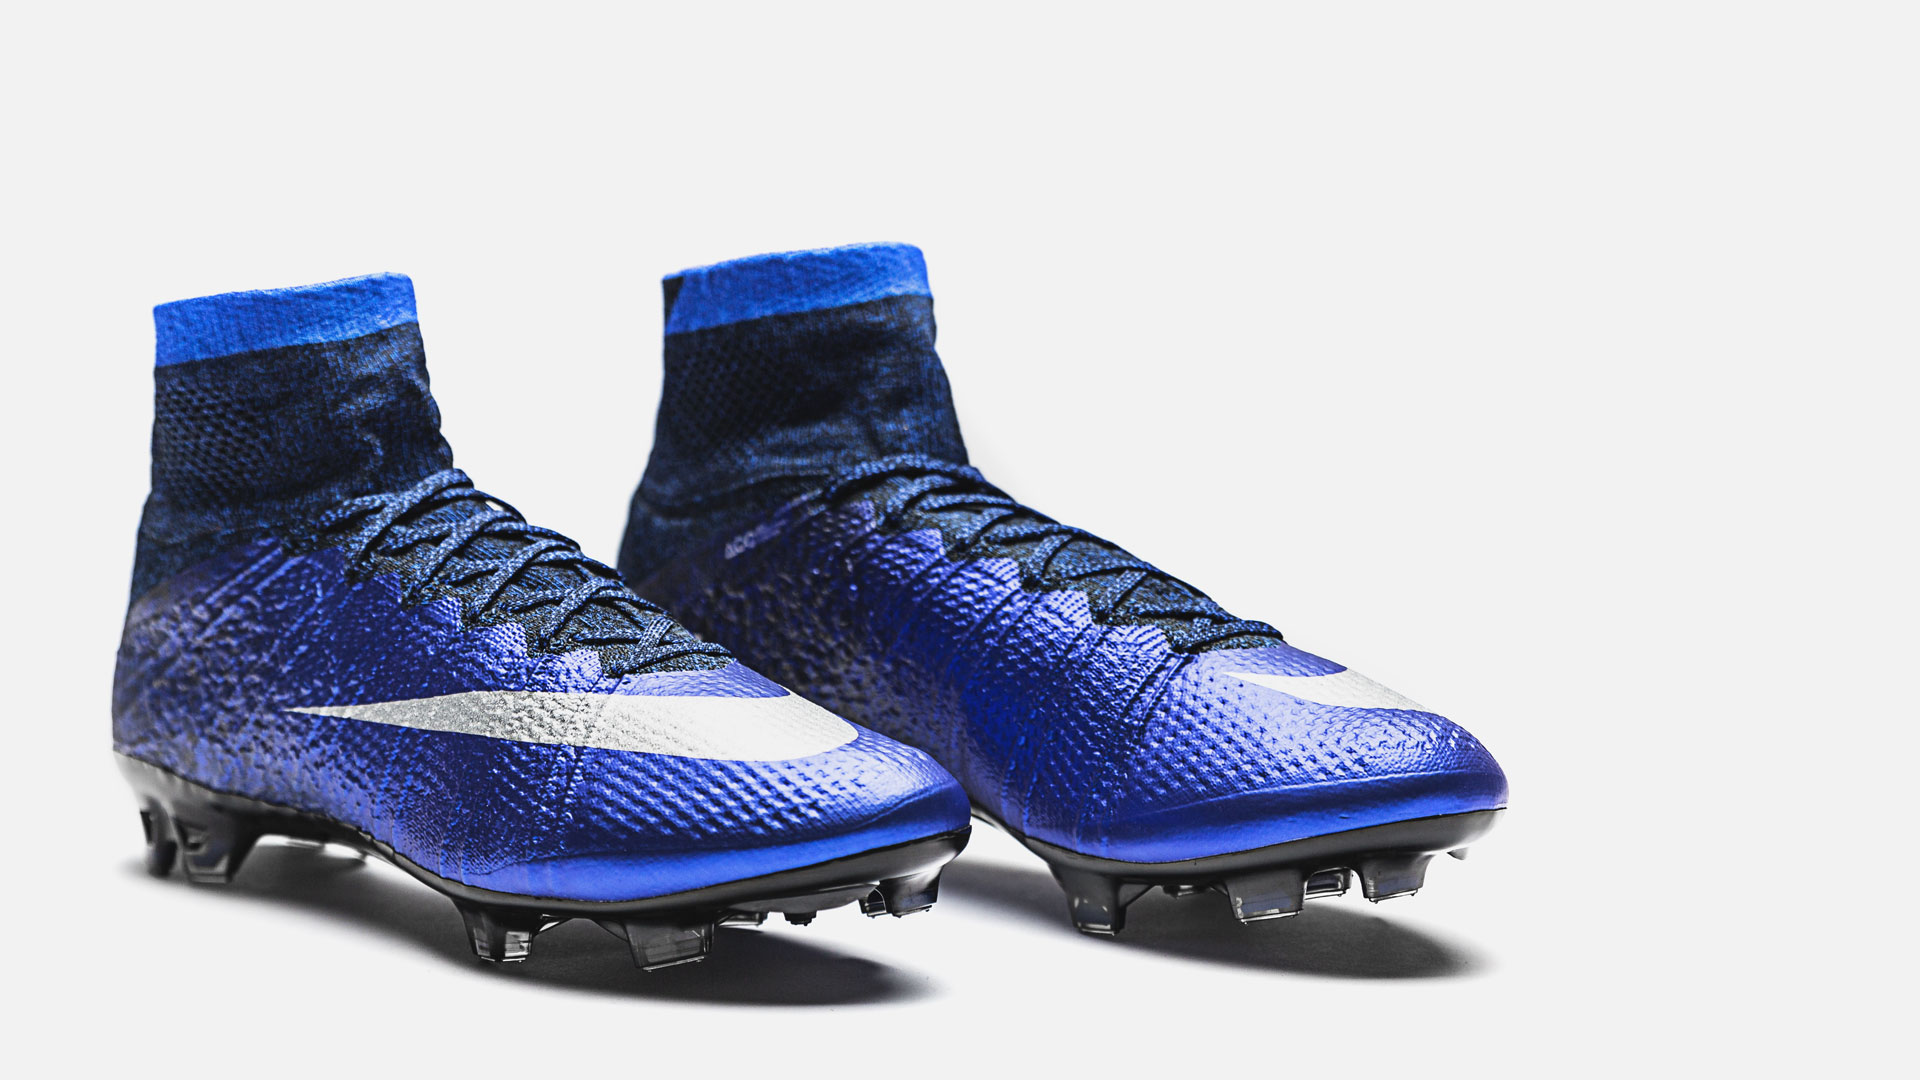 official photos 804ed 50a55 CR7 Nike Mercurial Superfly Natural Diamond